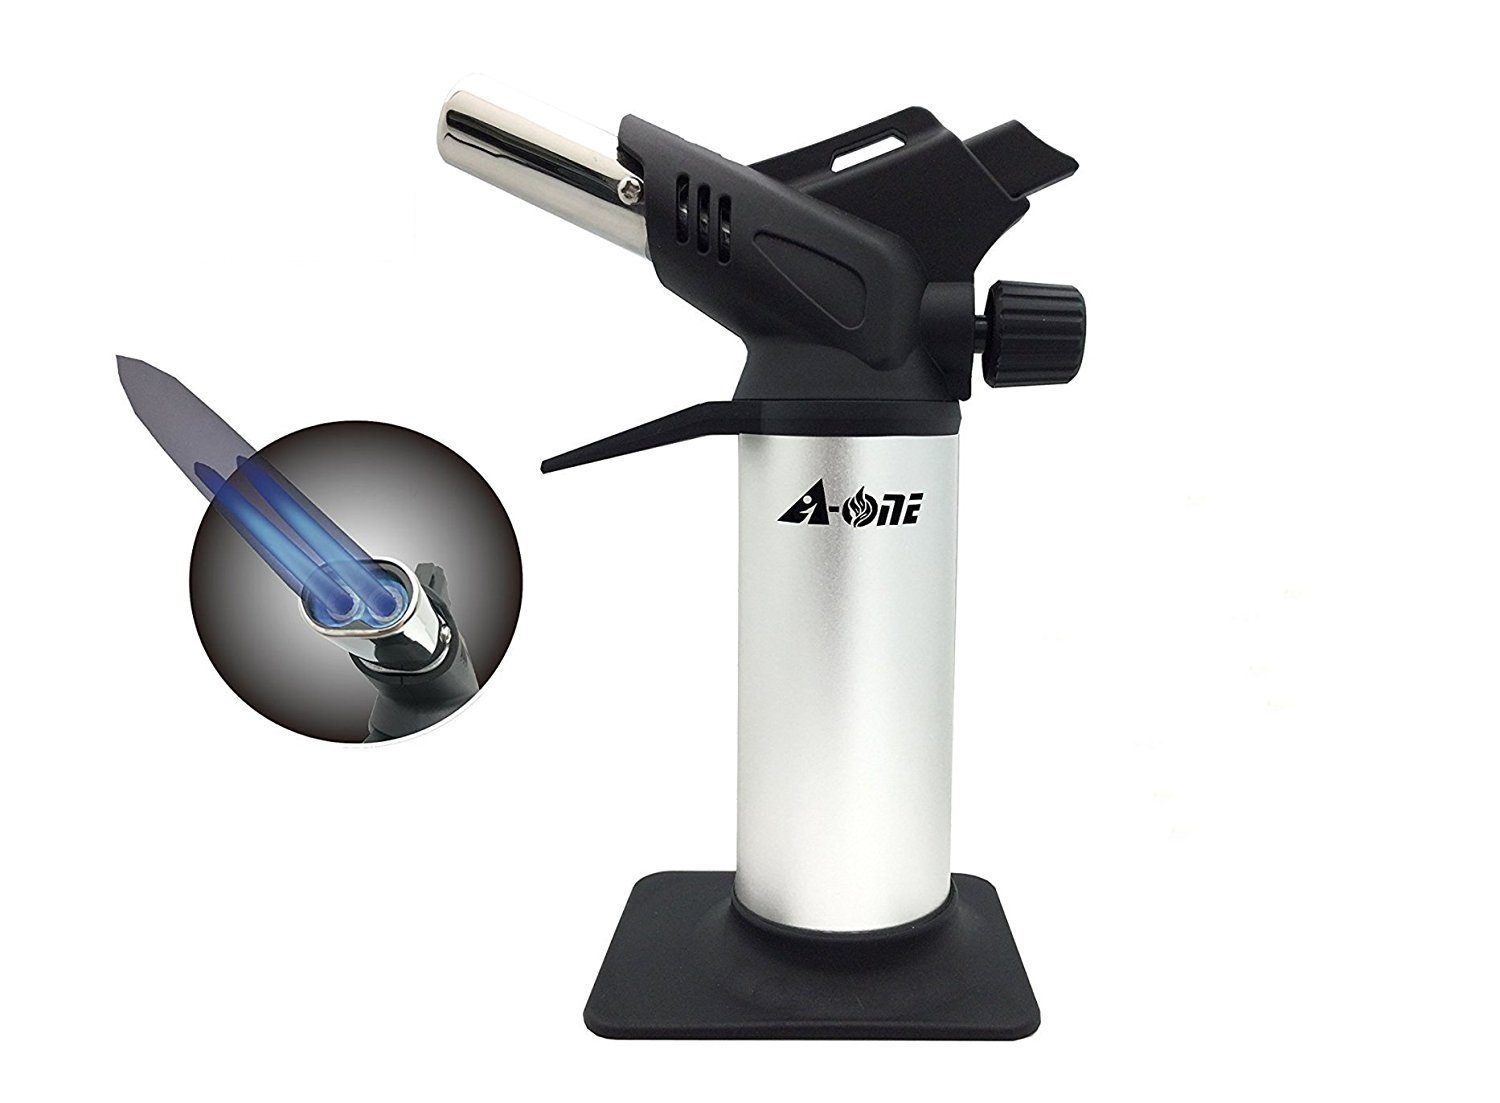 Culinary Torch,A-ONE Adjustable Double Flames Kitchen Torch For Crème Brulee, Sear Meat, Sliver